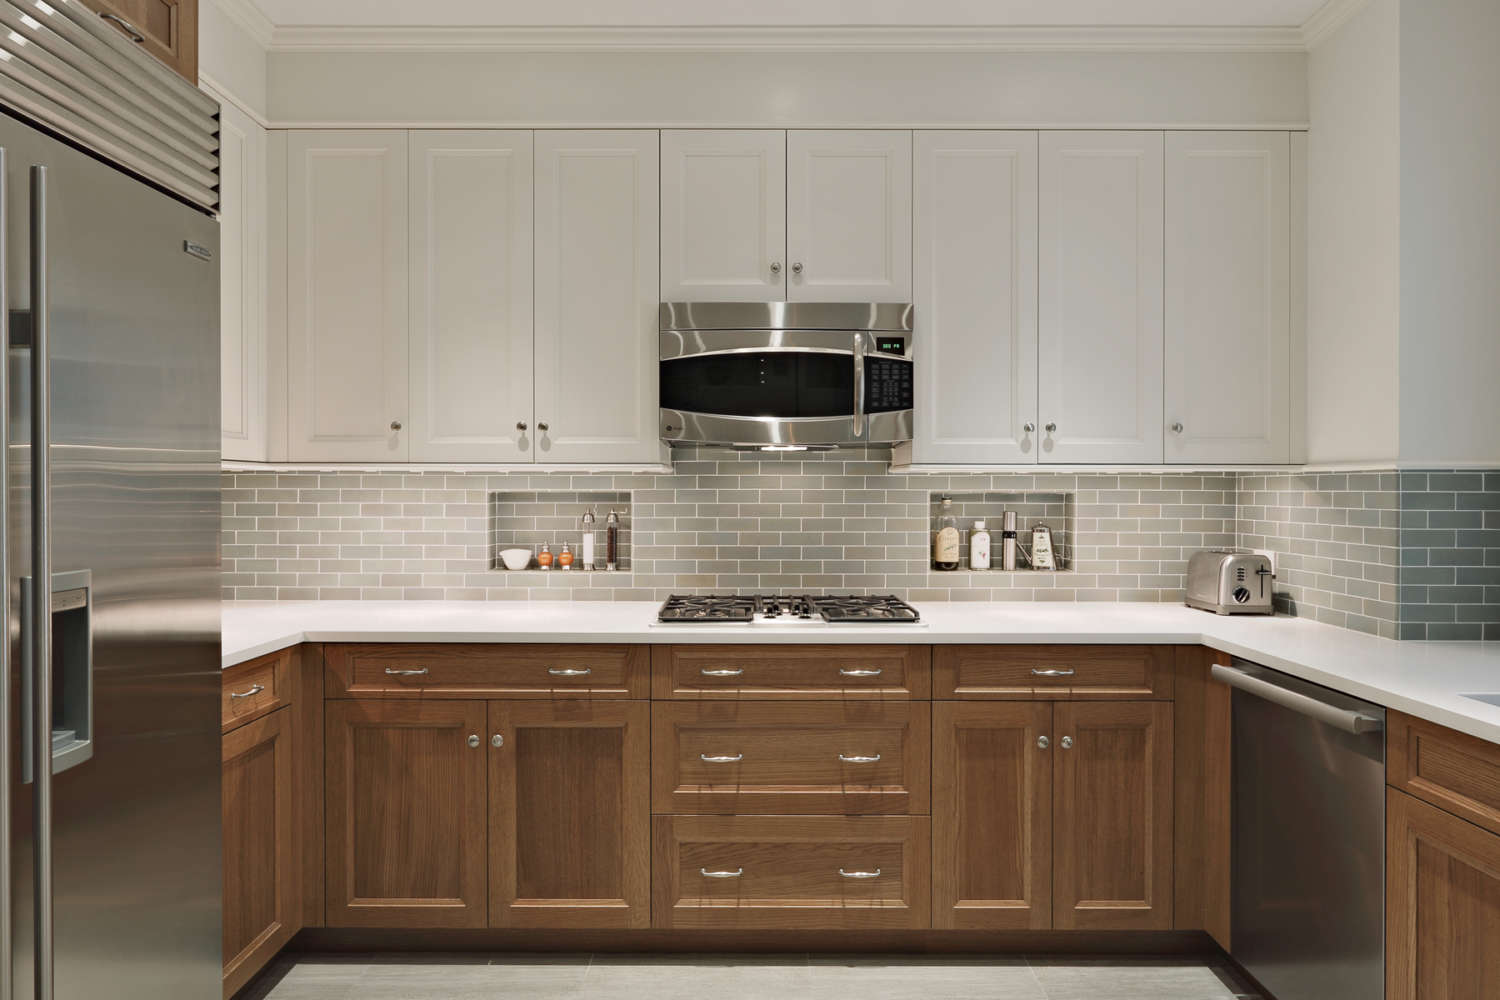 U-shaped kitchen features fully custom, frameless, shaker style Rutt Handcrafted Cabinetry in a mix of rift cut white oak and white painted finish, white quartz counters, neutral-toned subway tile backsplash and brushed stainless accents. Design by Tom Vecchio of Bilotta Kitchens.